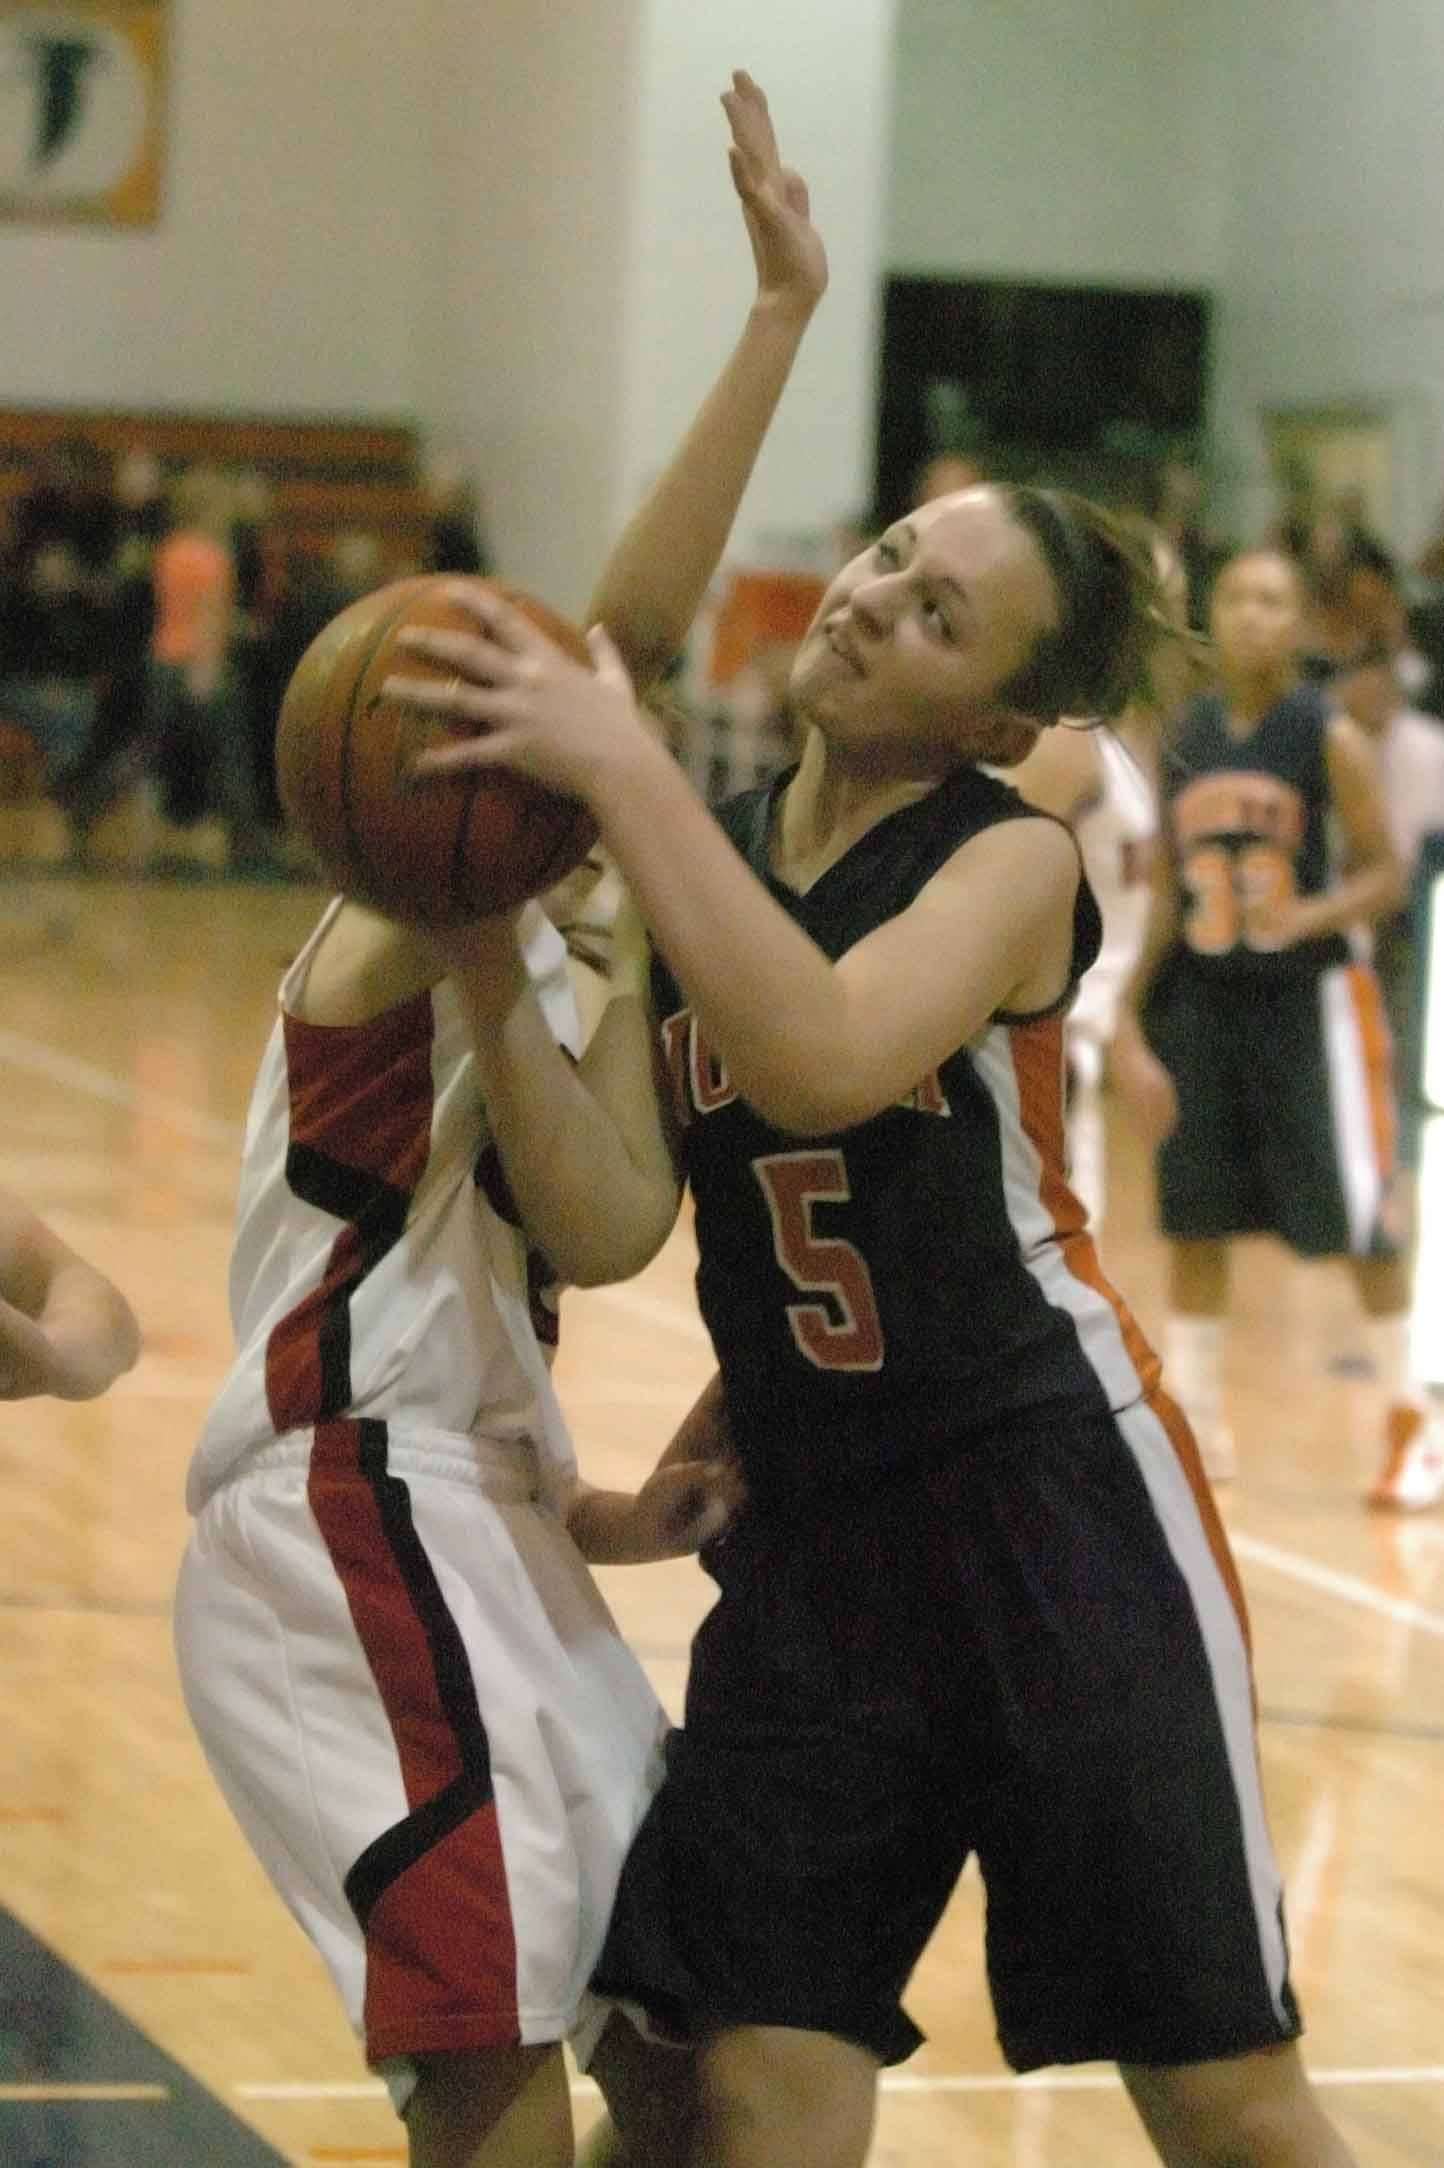 Jenna Jatczak of Naperville North tries to put up a shot against Benet.